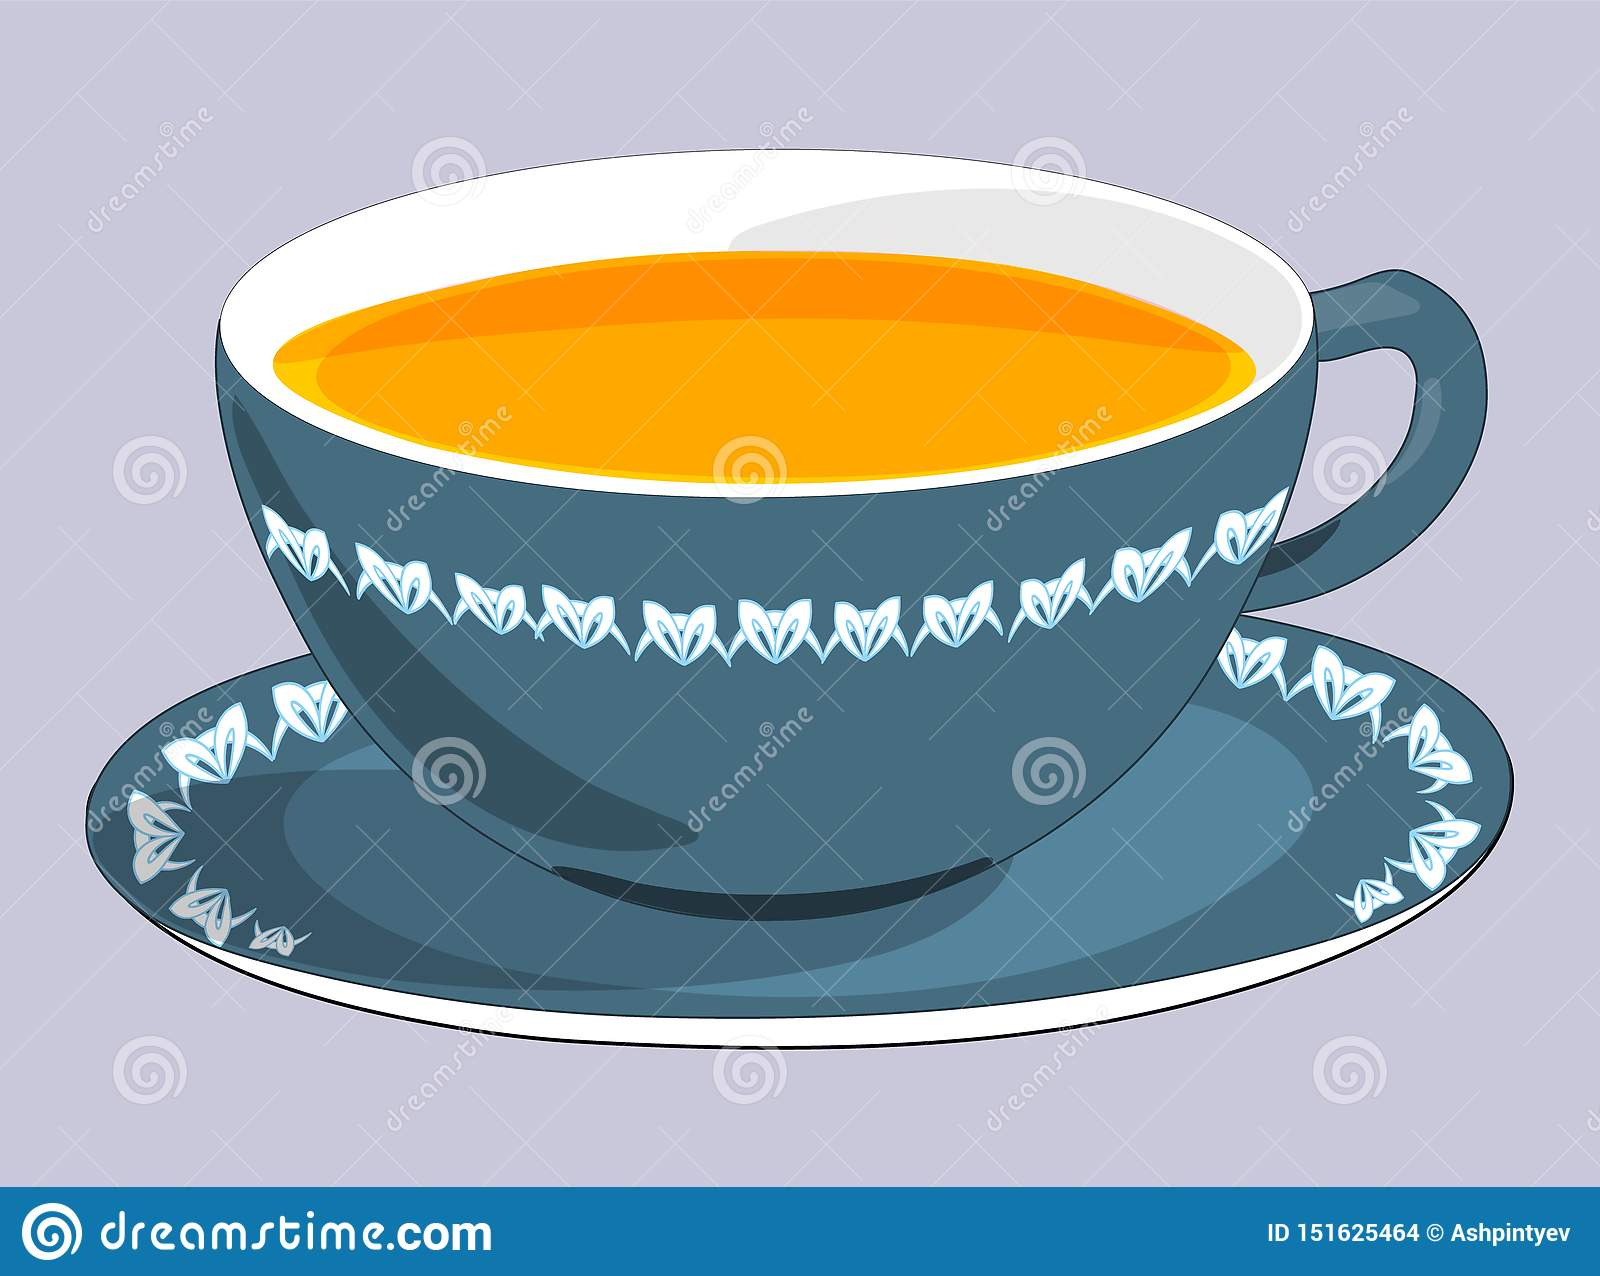 Flat Drawing Of A Cup And Saucer The Blue Mug Is Filled With Tea Tea Party Isolated Grey Vector Stock Vector Illustration Of Saucer Element 151625464